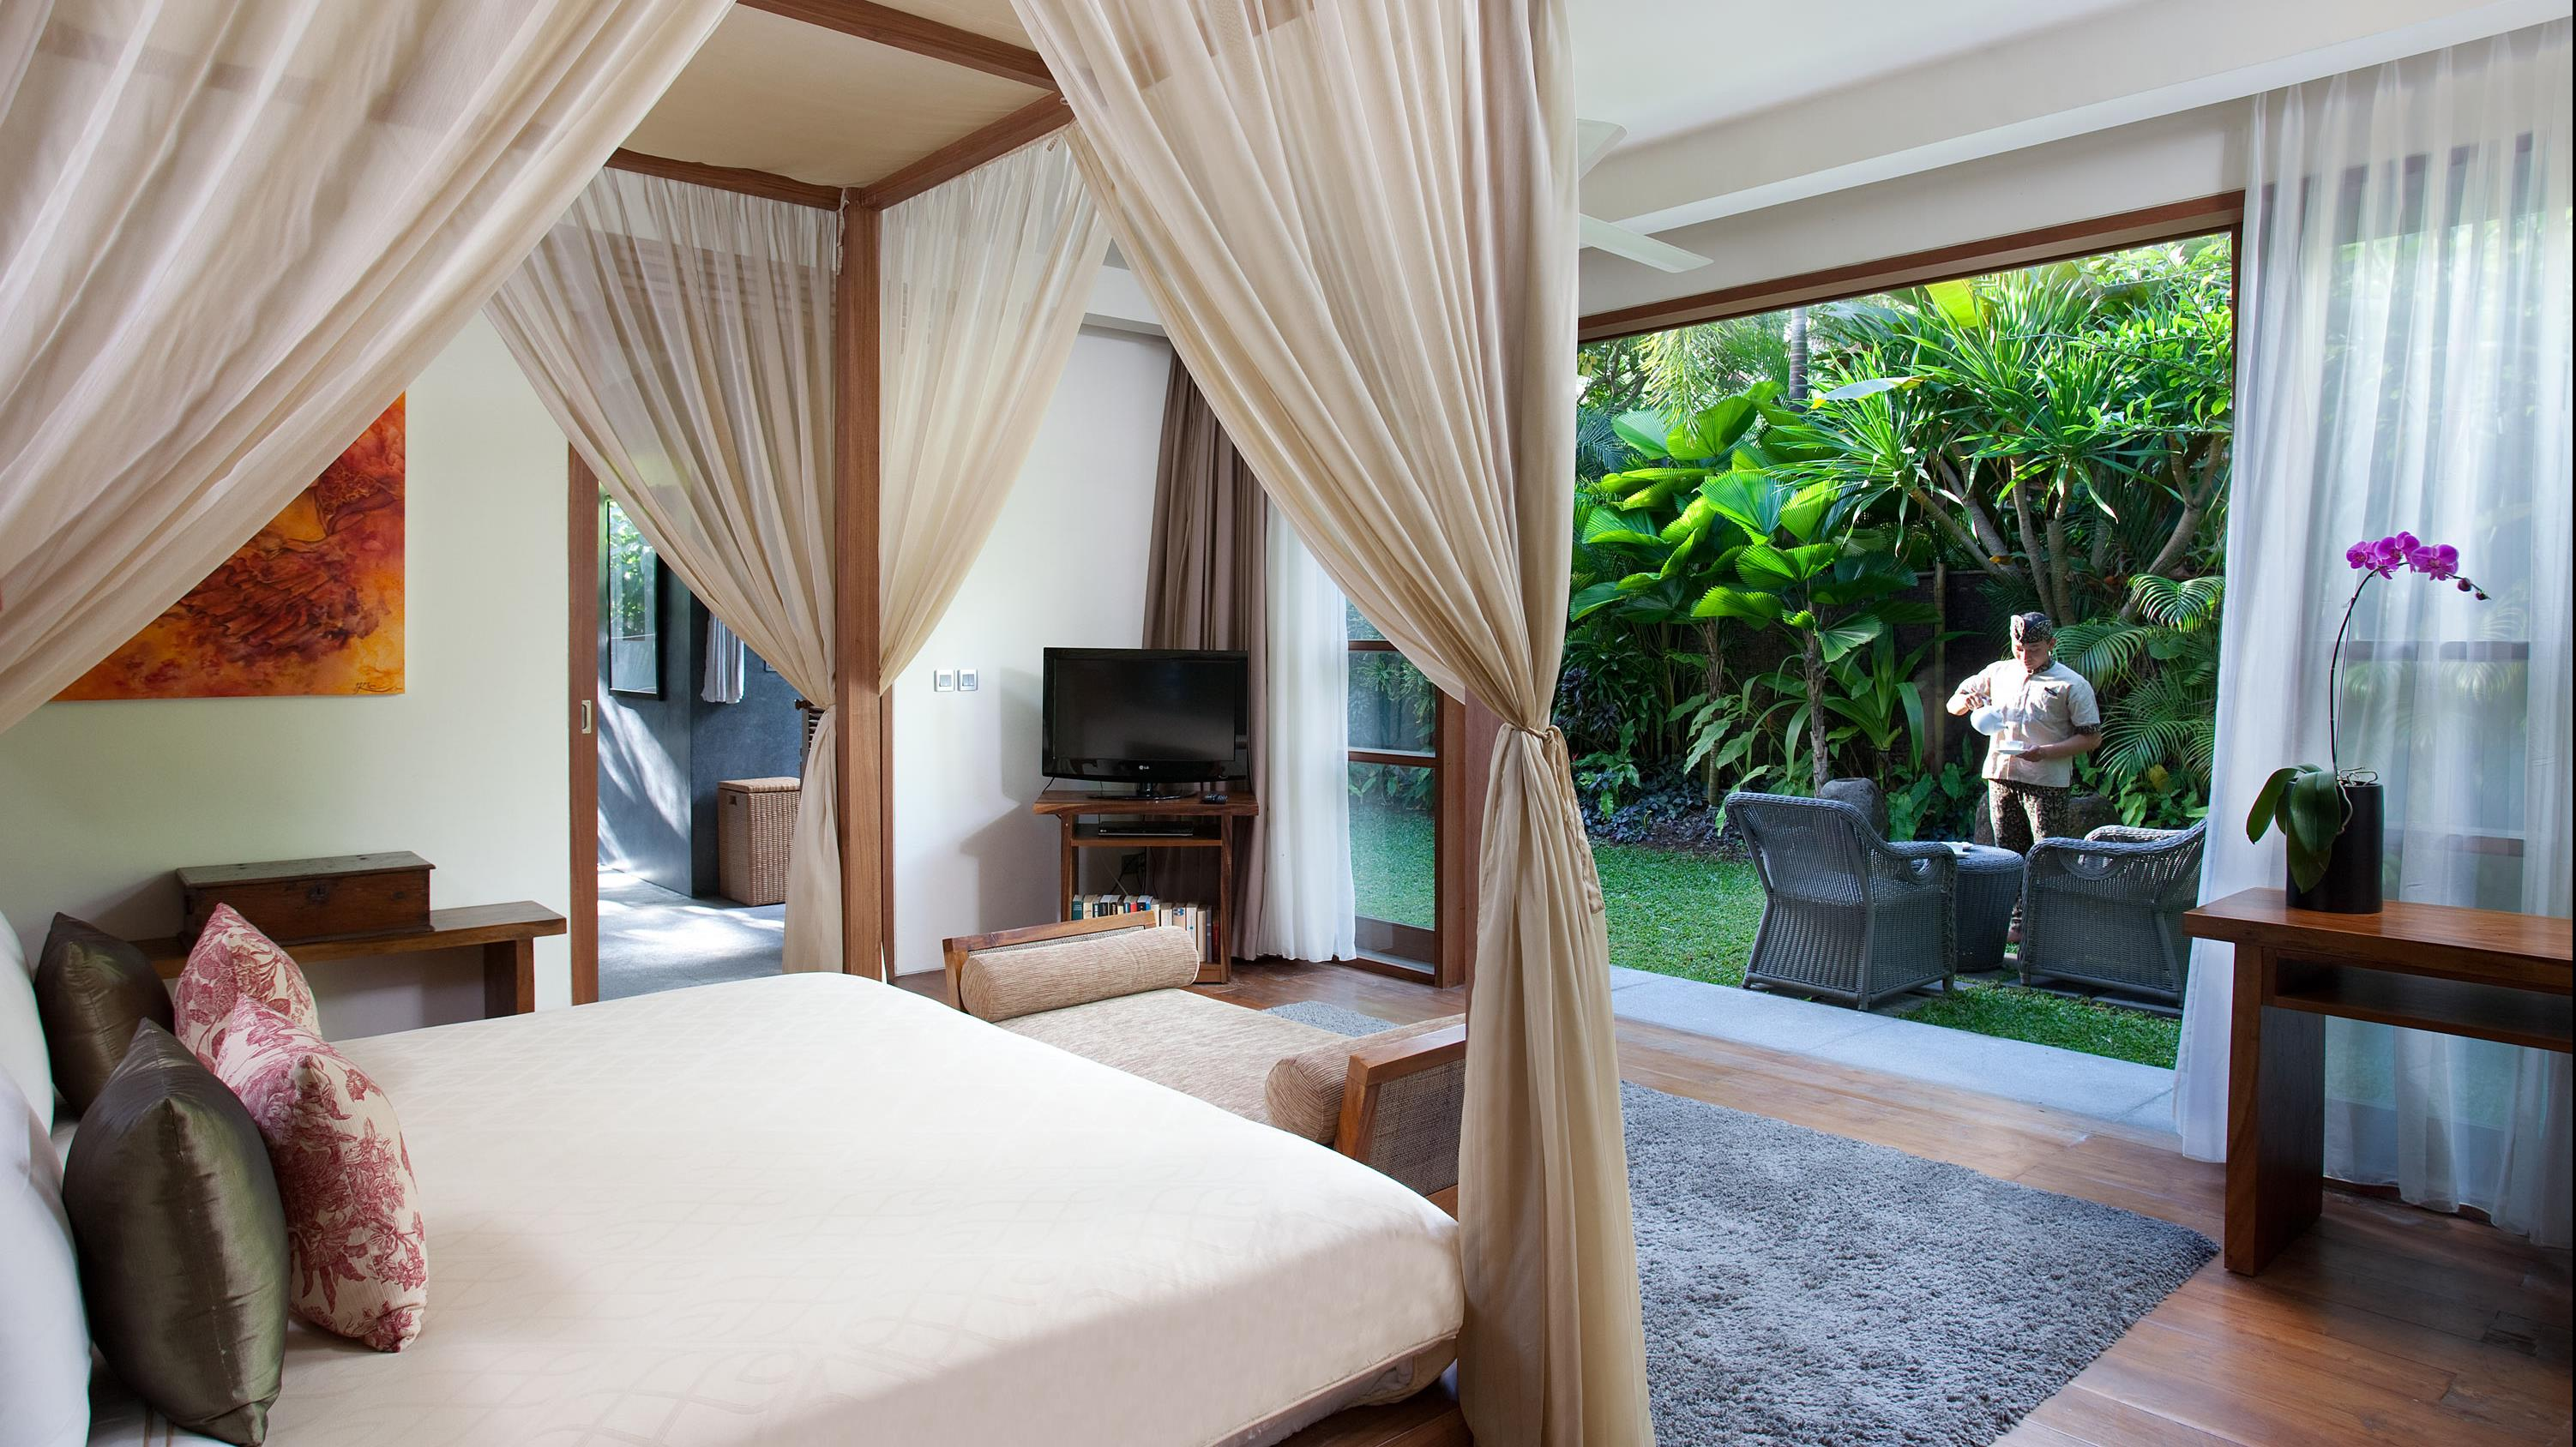 Bedroom with Garden View - Villa Sarasvati - Canggu, Bali